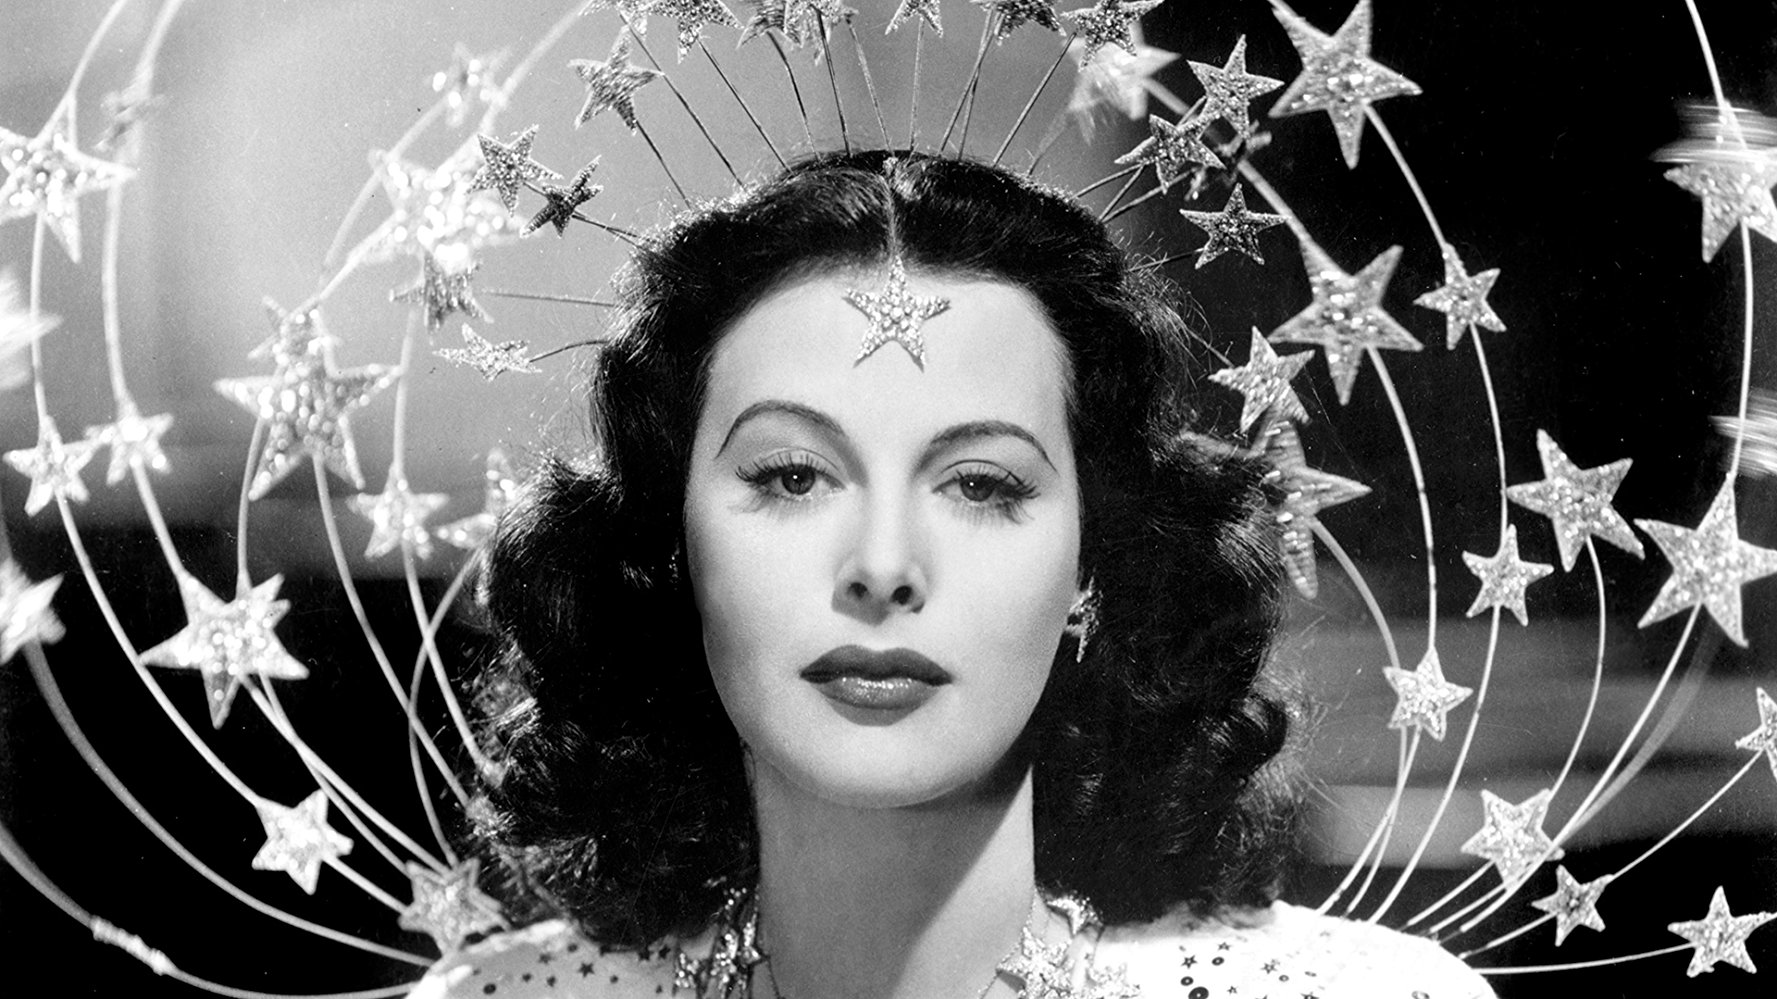 <b>BOMBSHELL: THE HEDY ...</b>